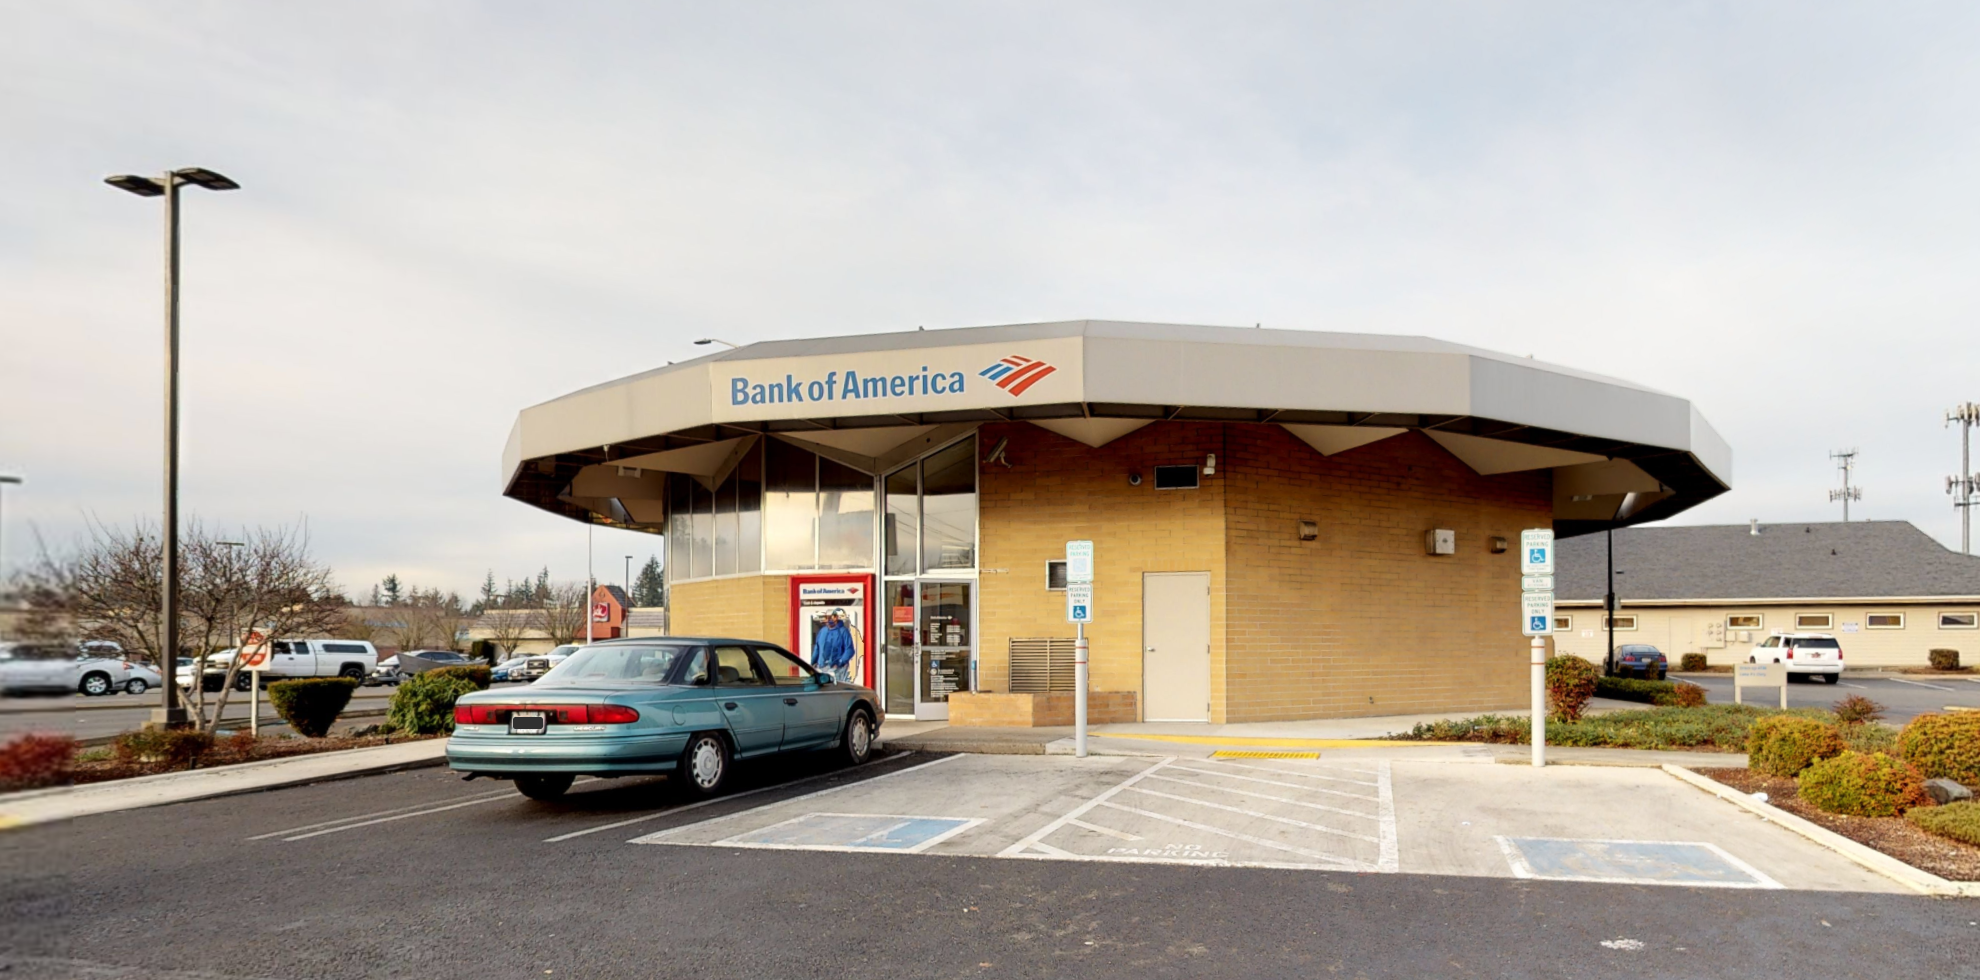 Bank of America financial center with drive-thru ATM   11111 Canyon Rd E, Puyallup, WA 98373